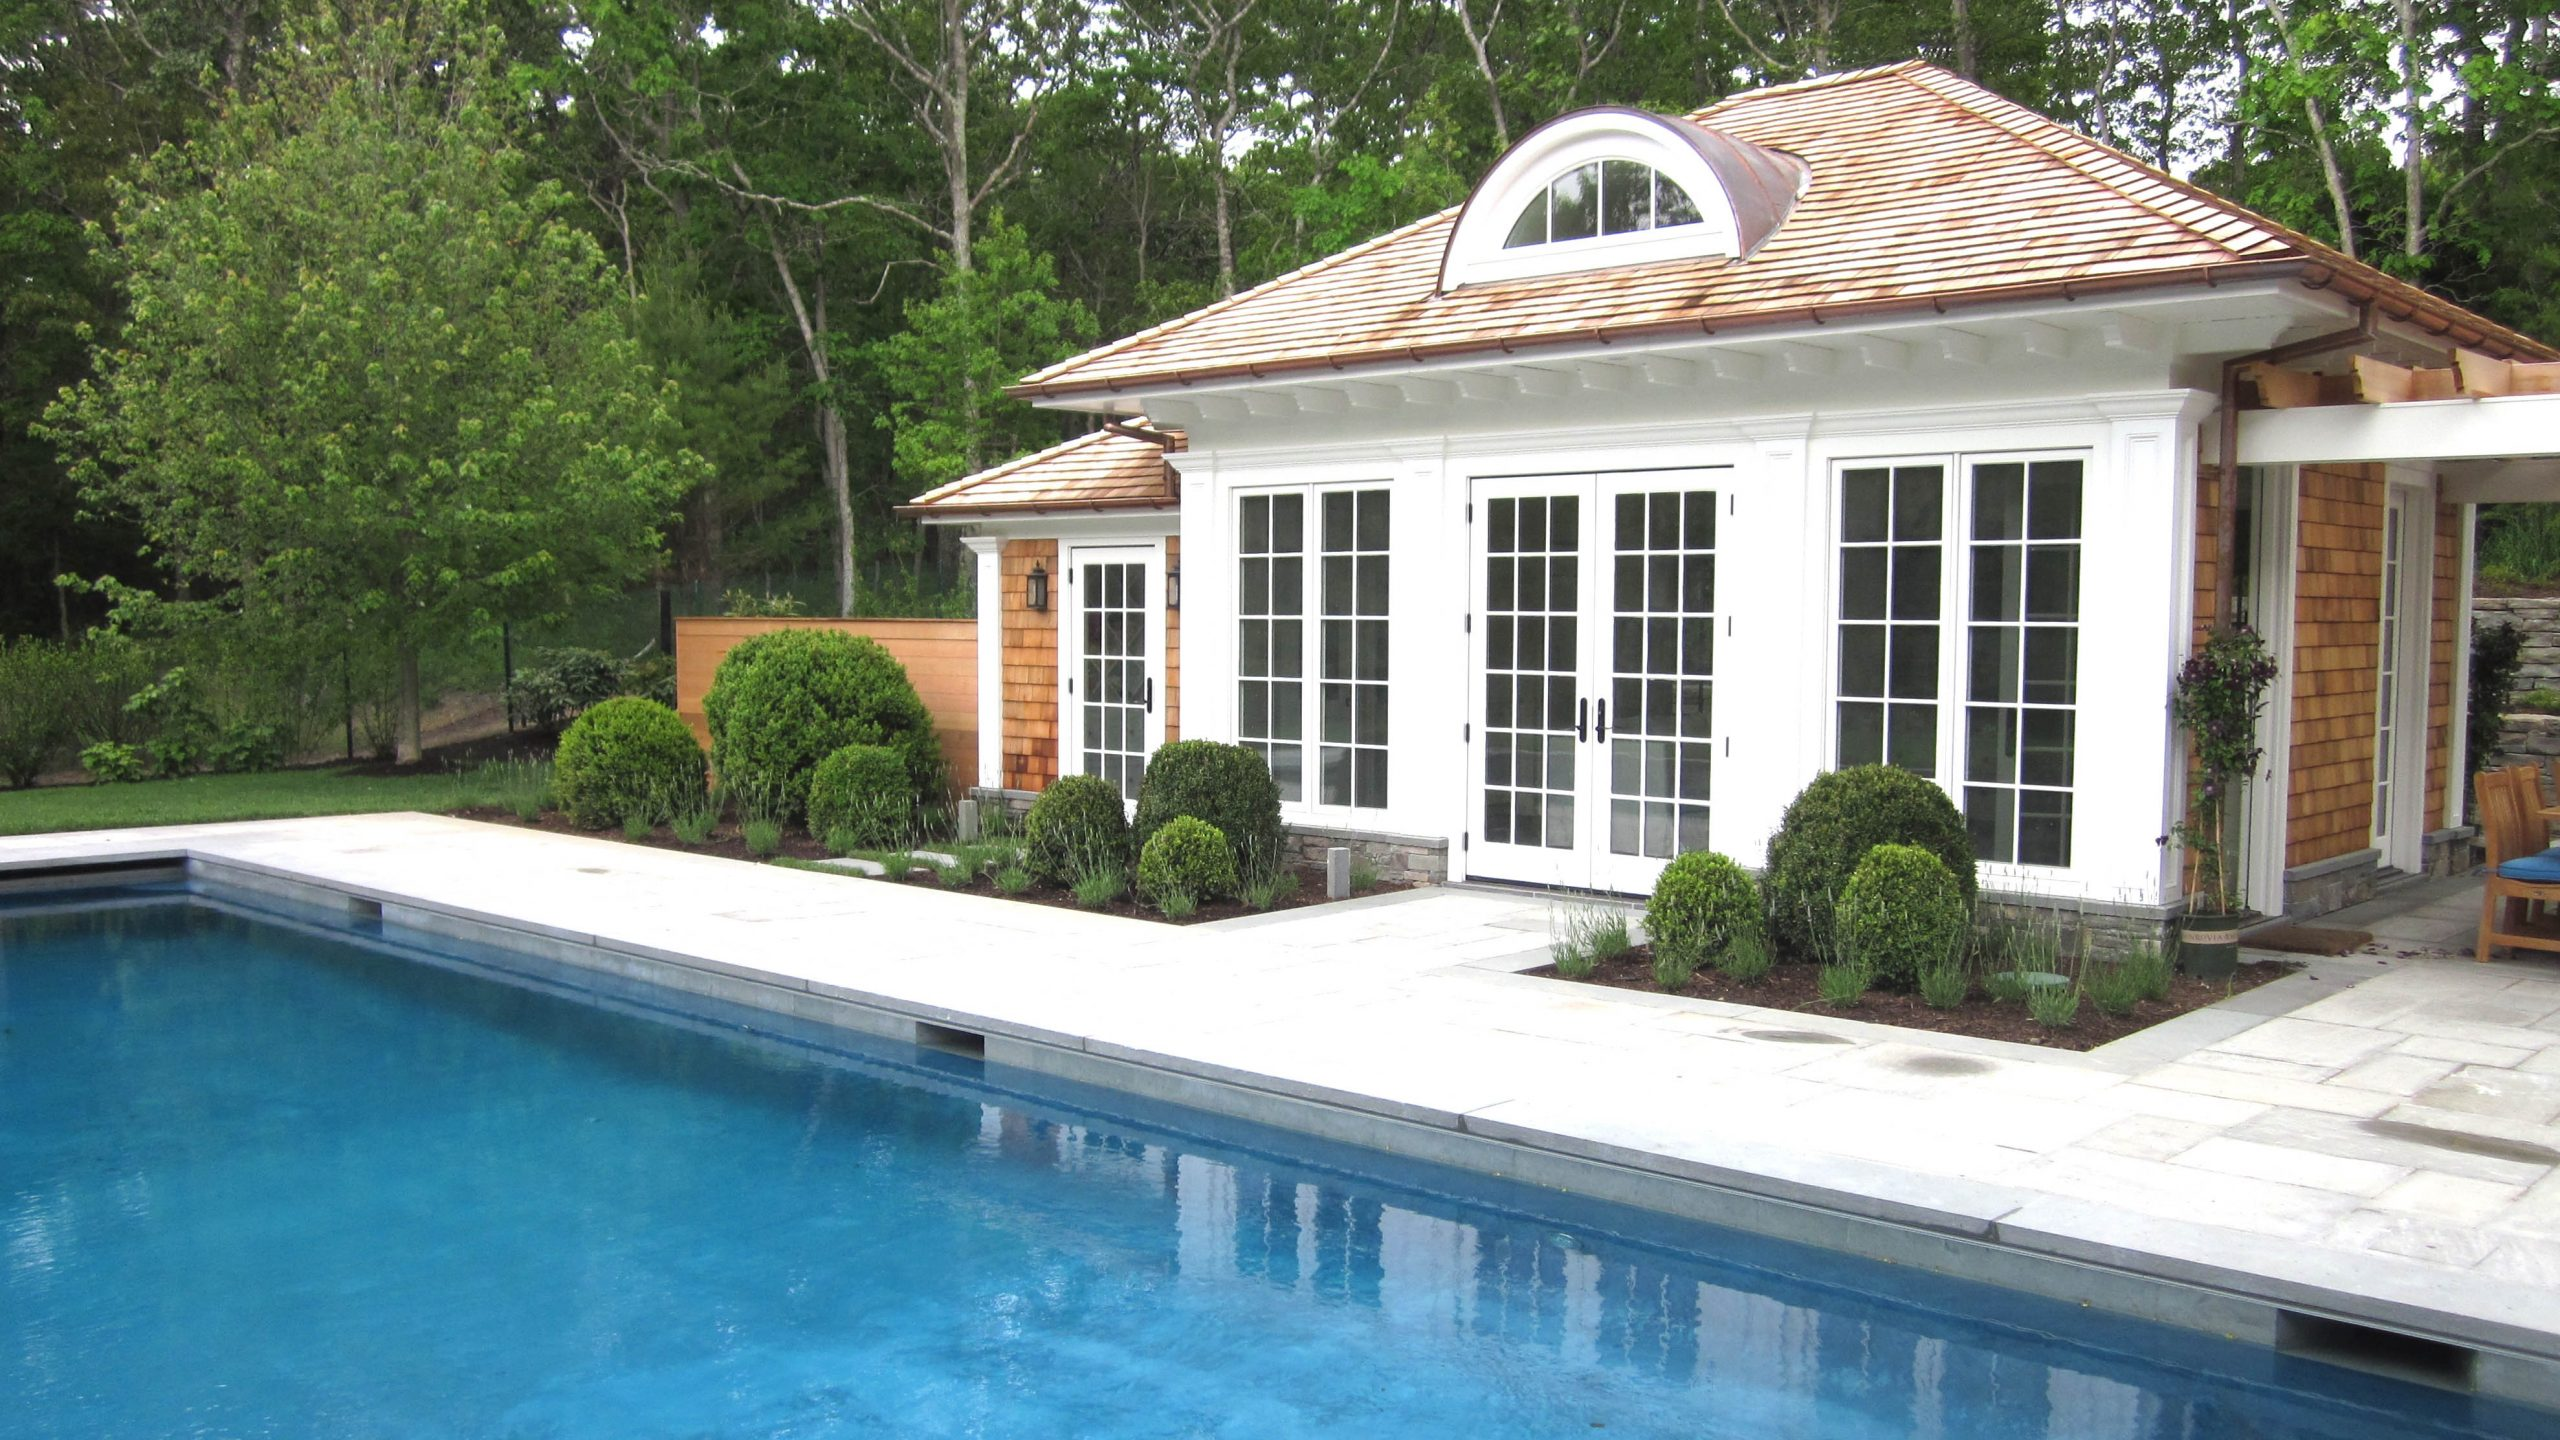 1-water-mill-pool-house-7291